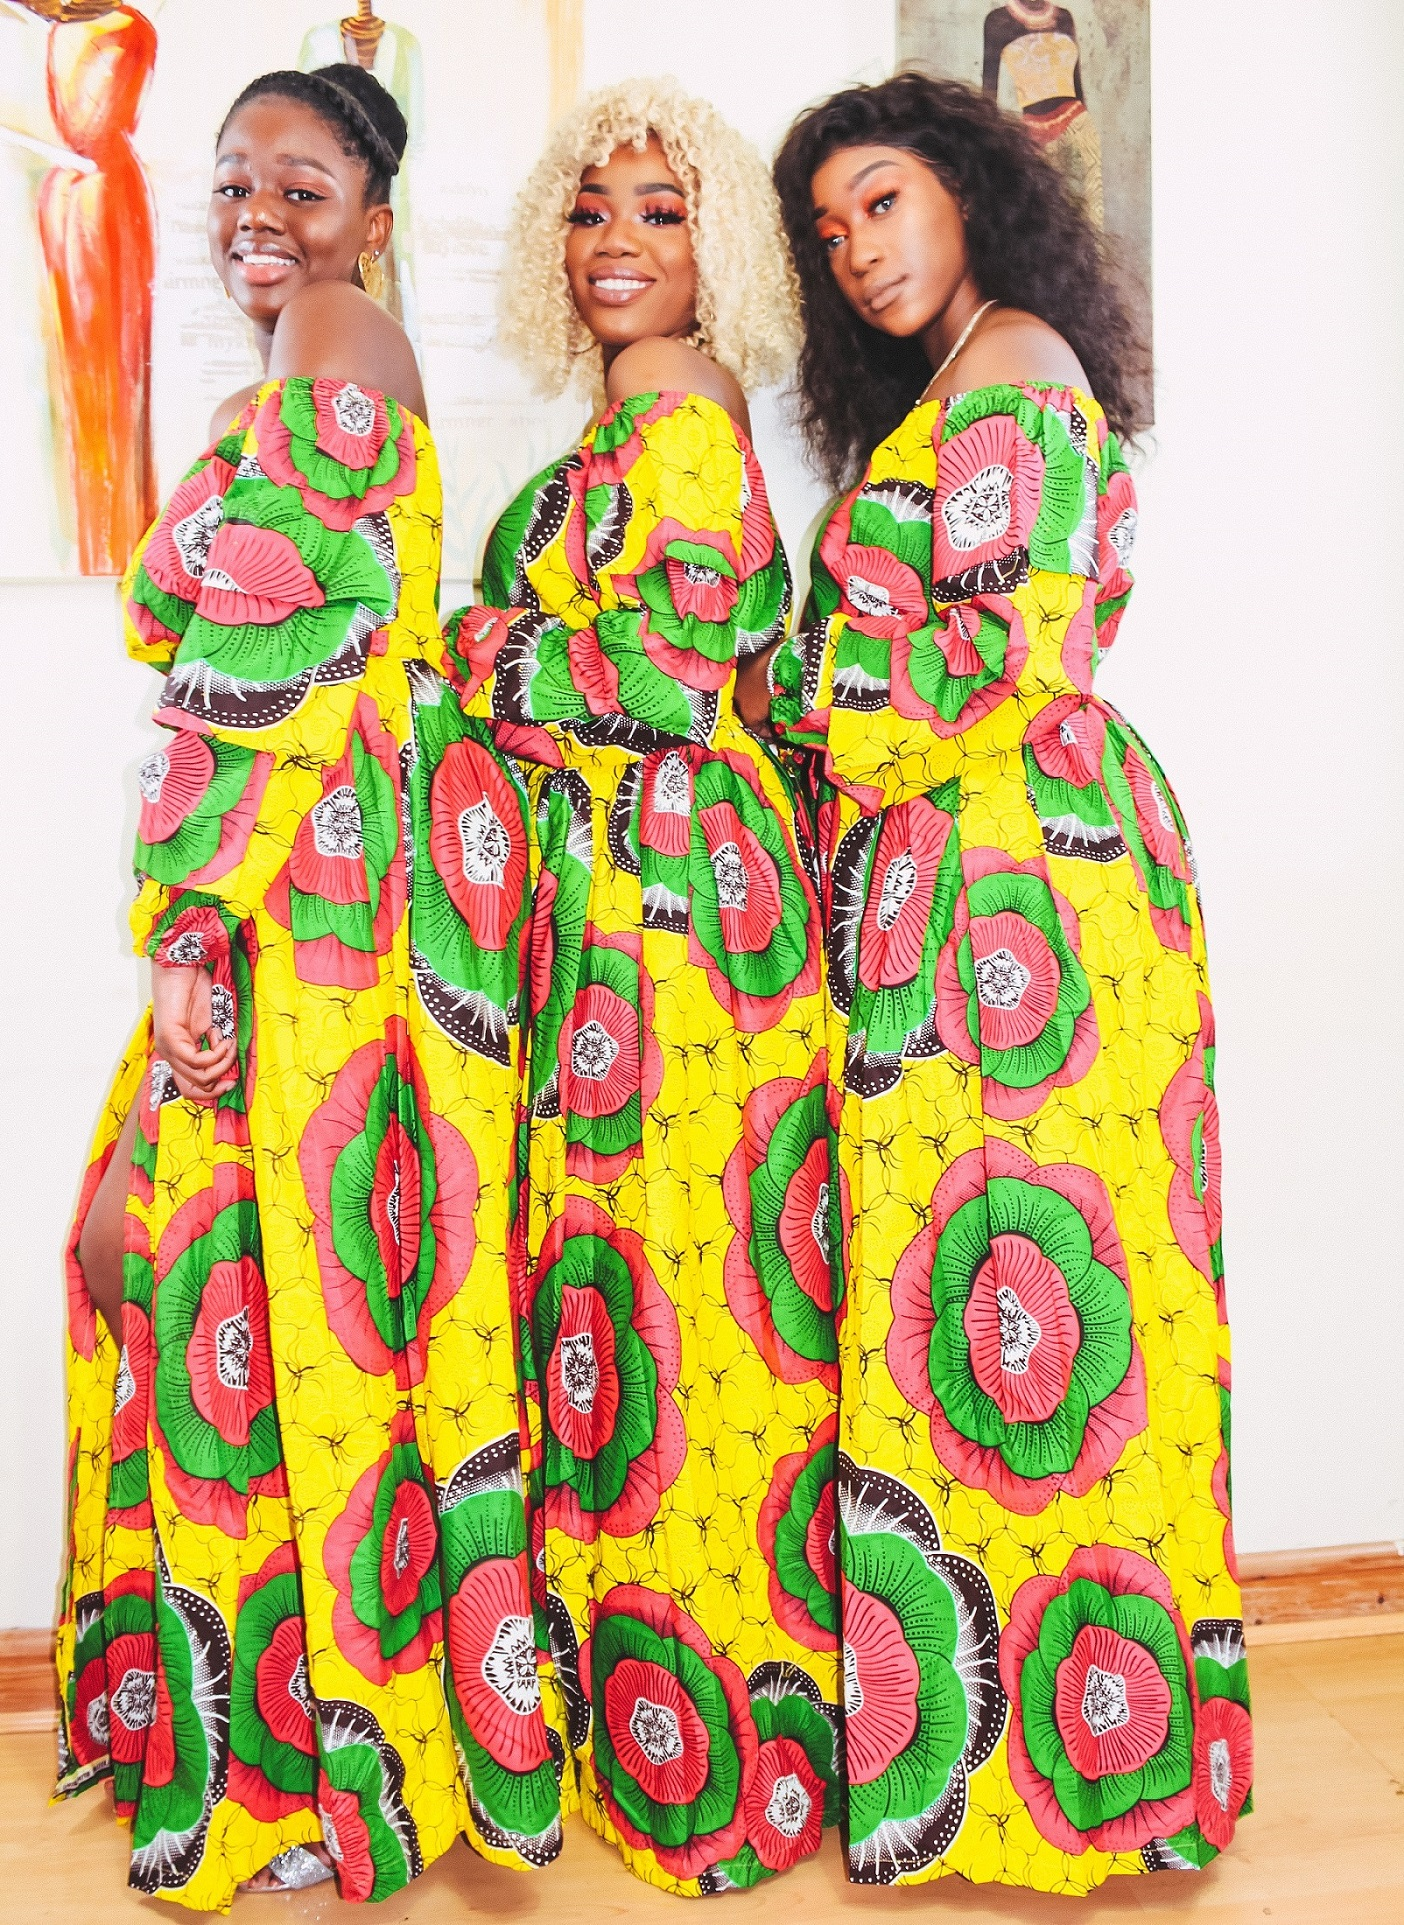 Black Queens in Angelle Fenton in Sunflower 2-piece Ankara Print Crop Top and thigh-High Split Maxi Skirt by Yvonne Irenroa African Fashion